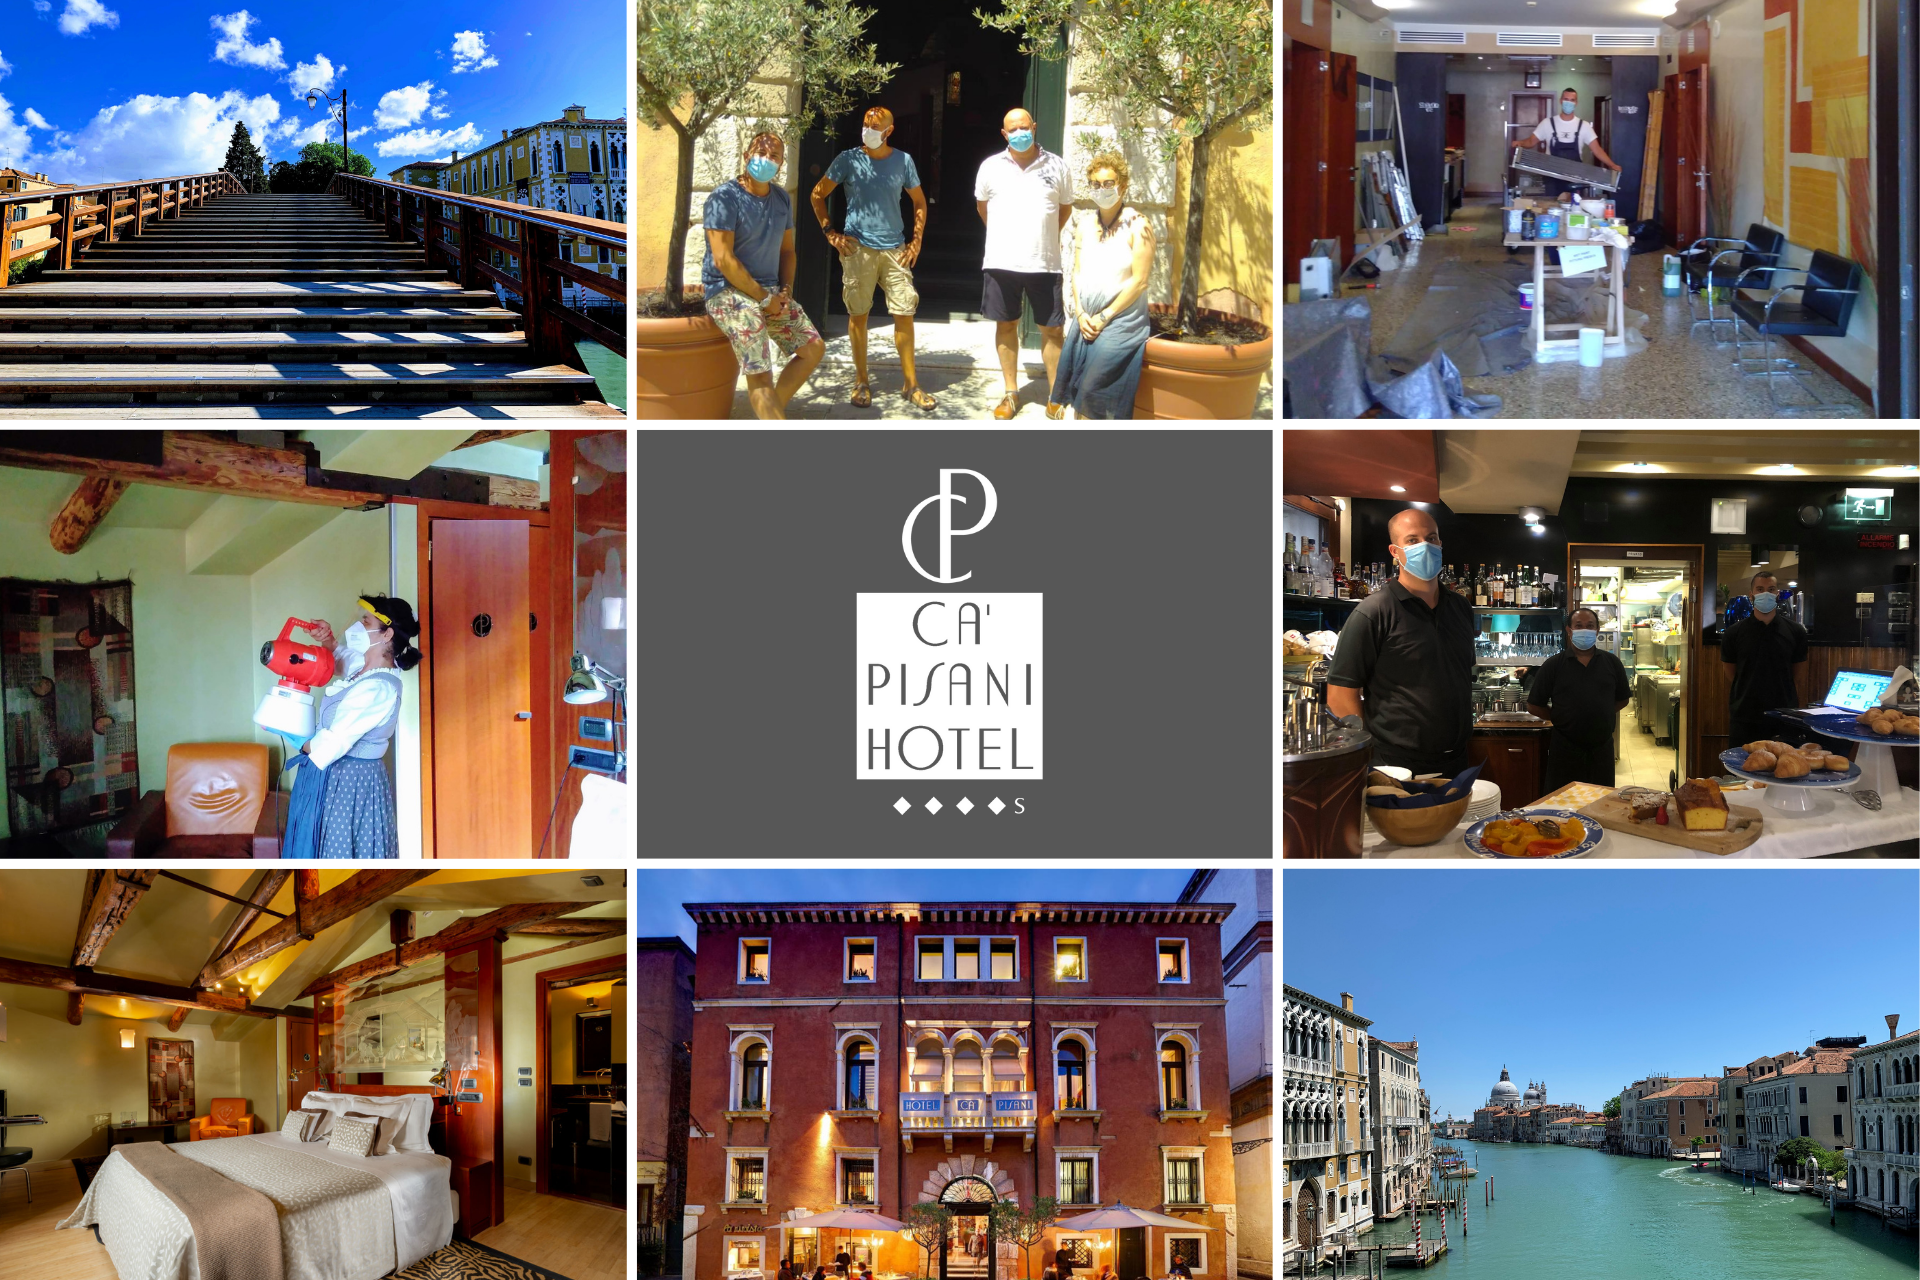 Ca' Pisani Hotel Venice - temporary closure - october 2020